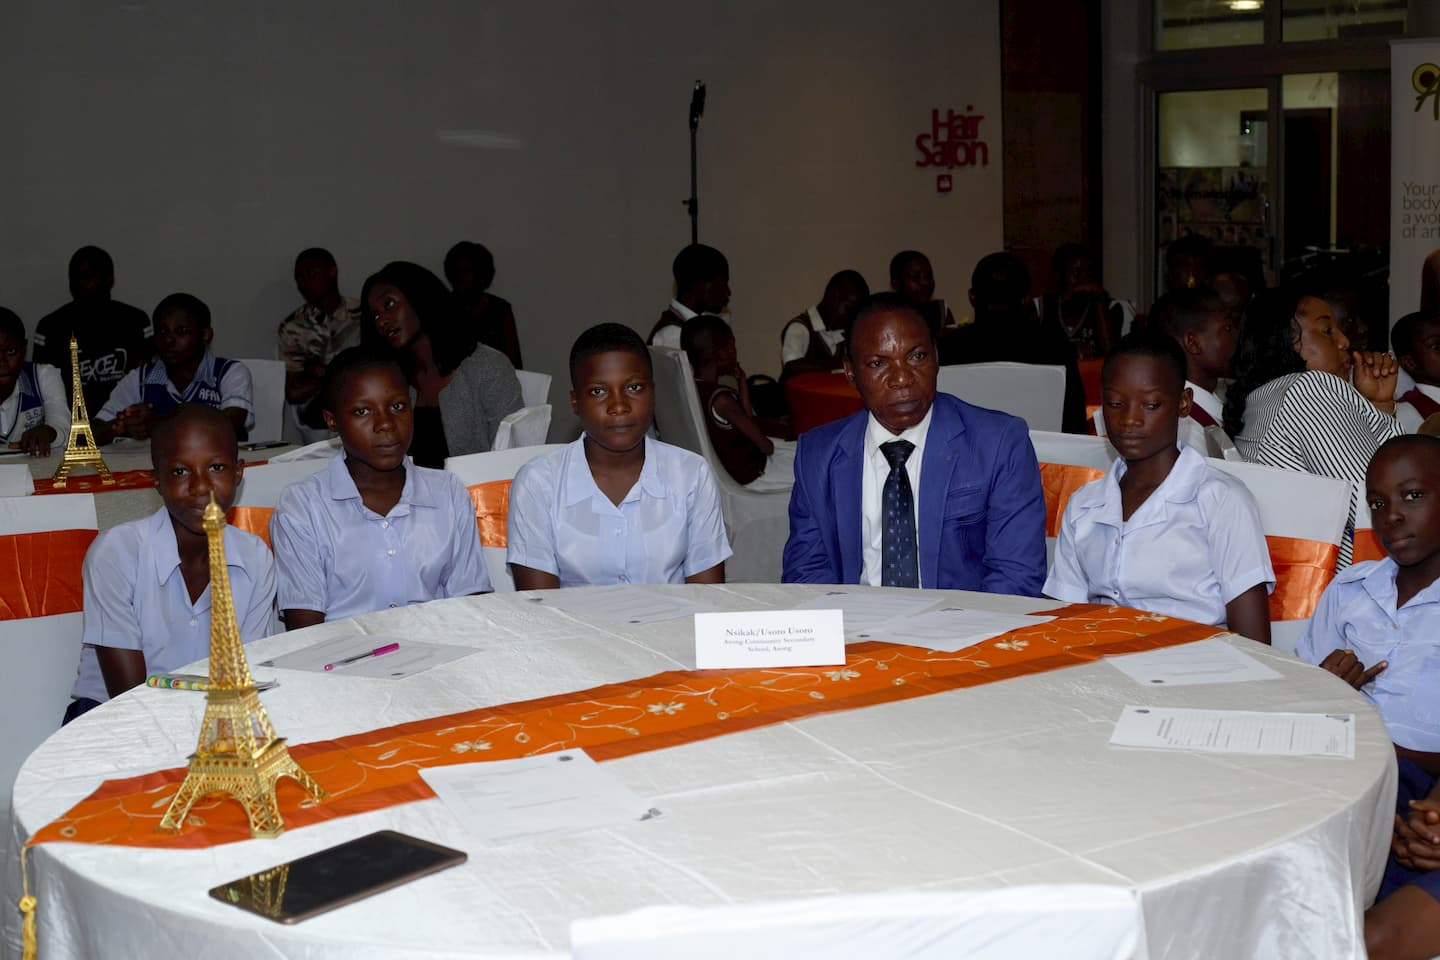 The Principal and the students of Asong Community Secondary School during the Mentoring clinic